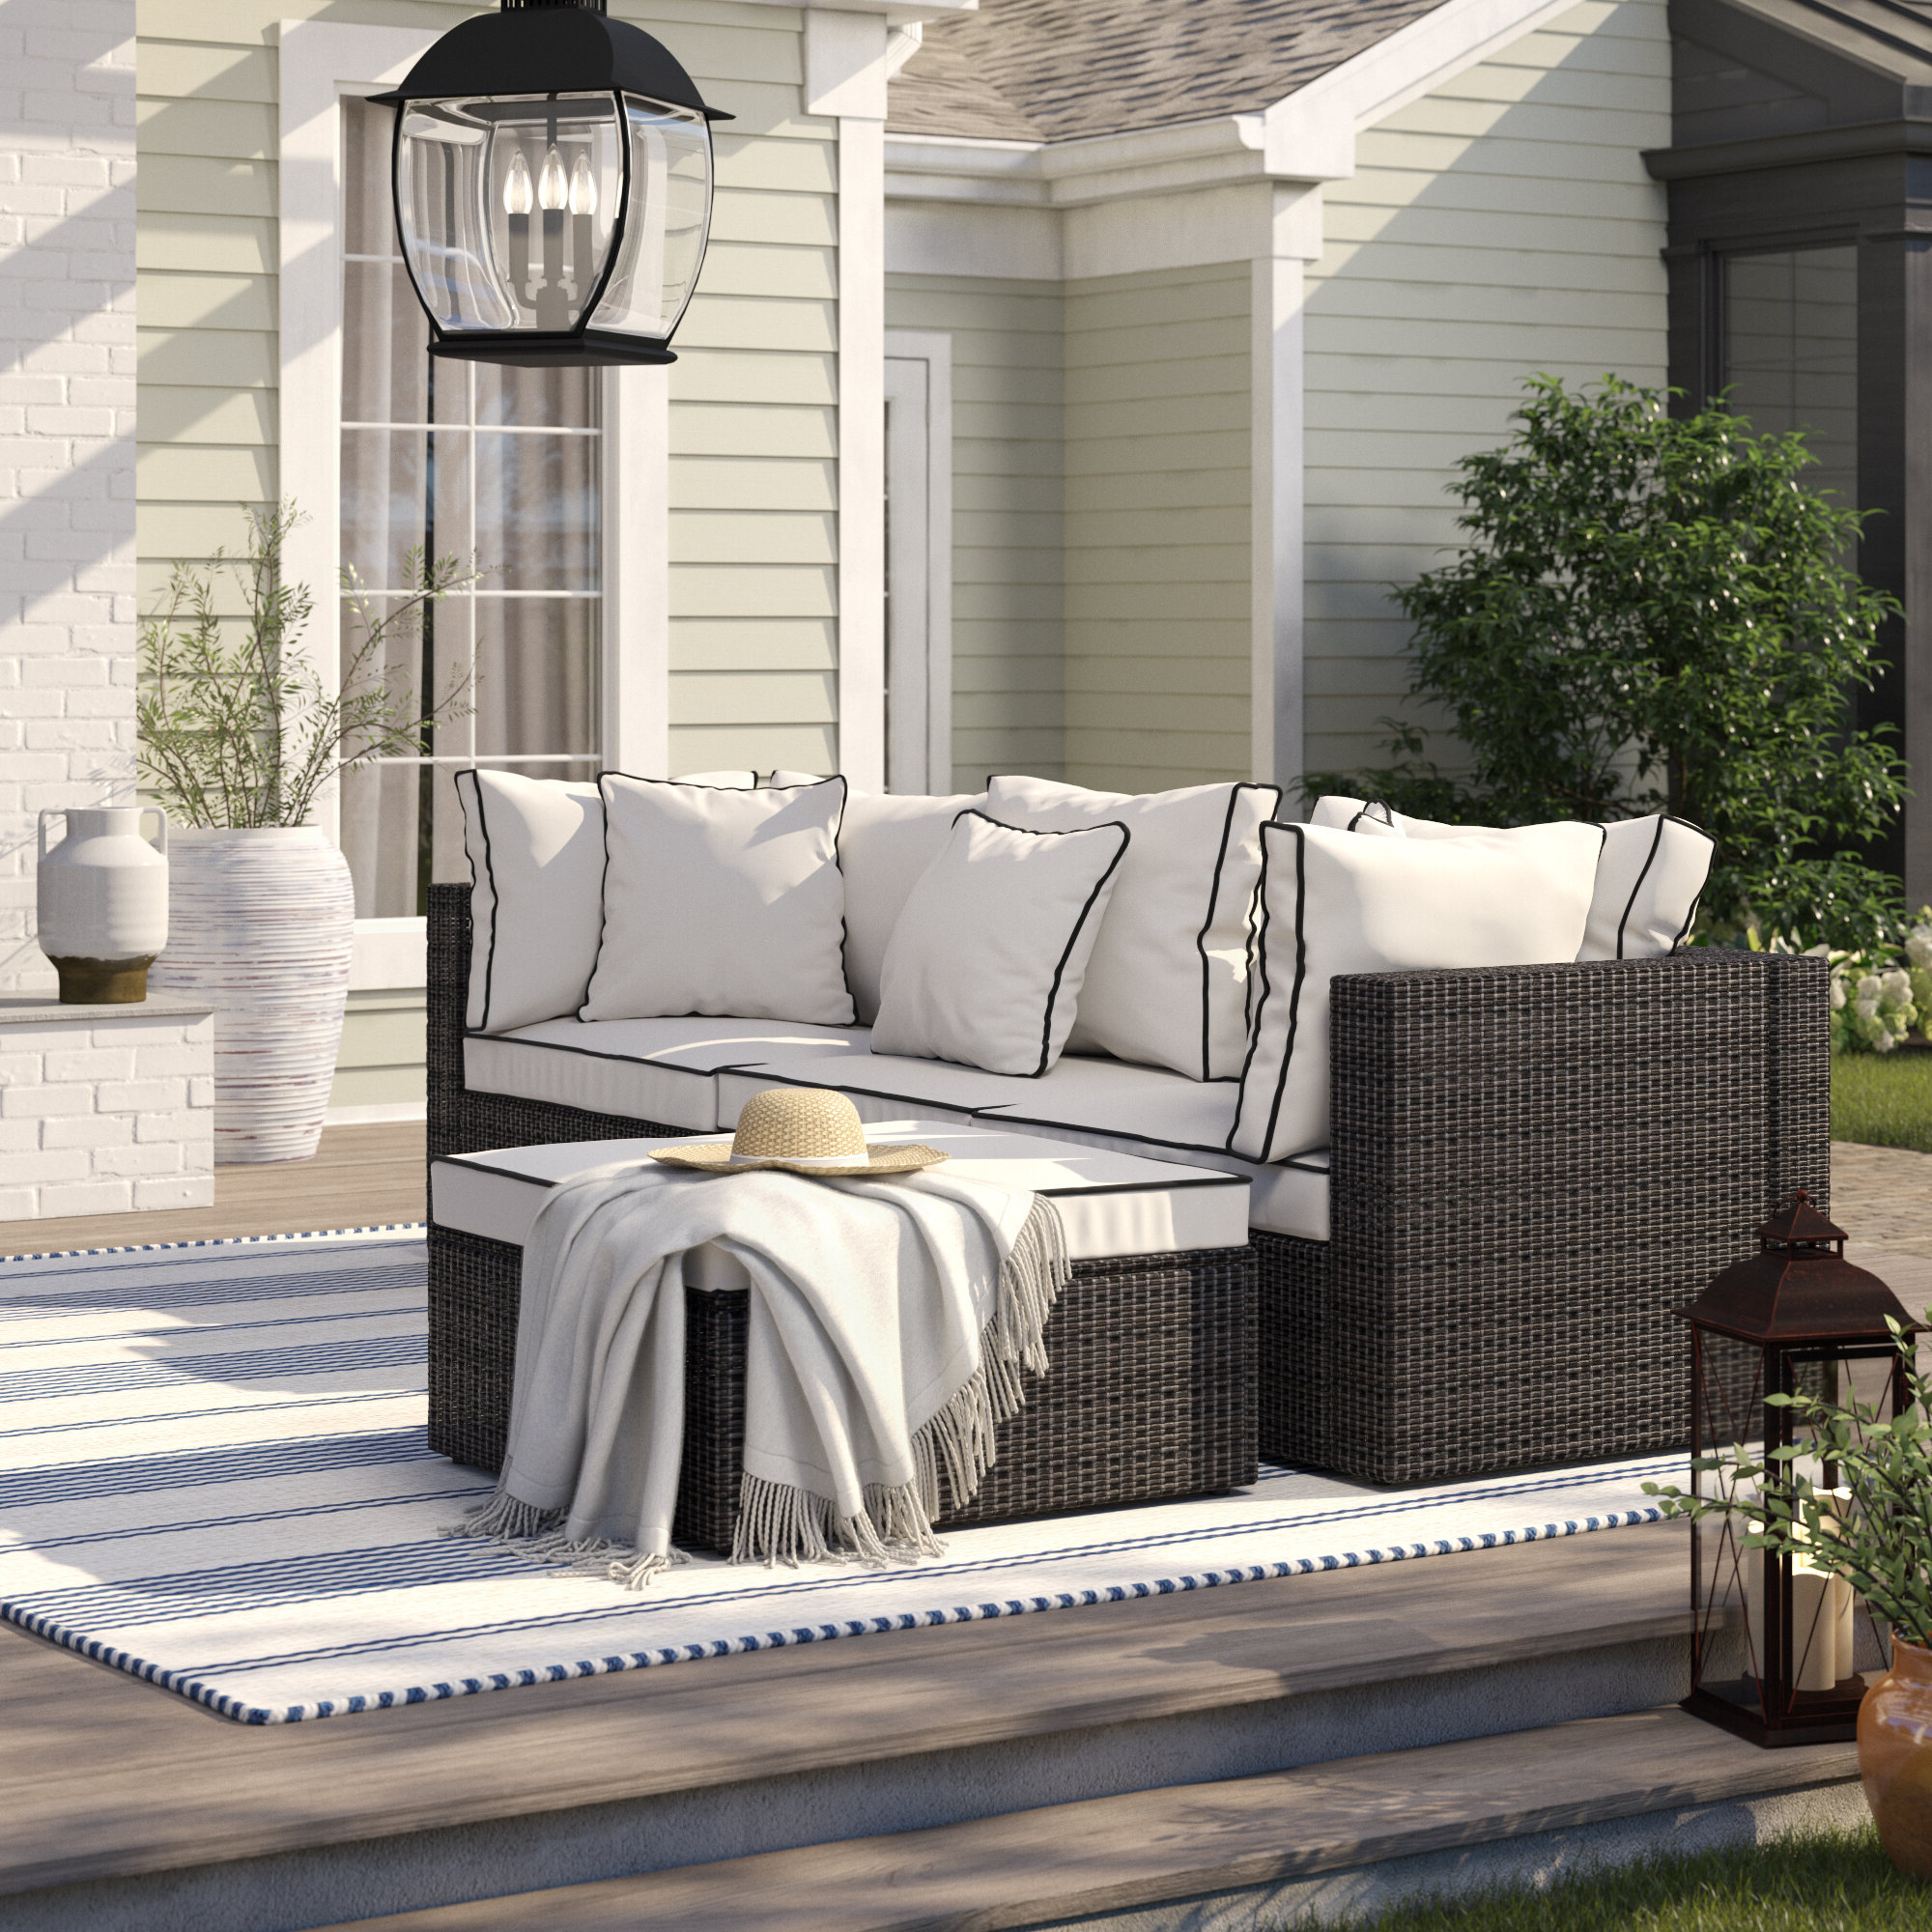 Fashionable Burruss Patio Sectional With Cushions Inside Burruss Patio Sectionals With Cushions (View 6 of 25)